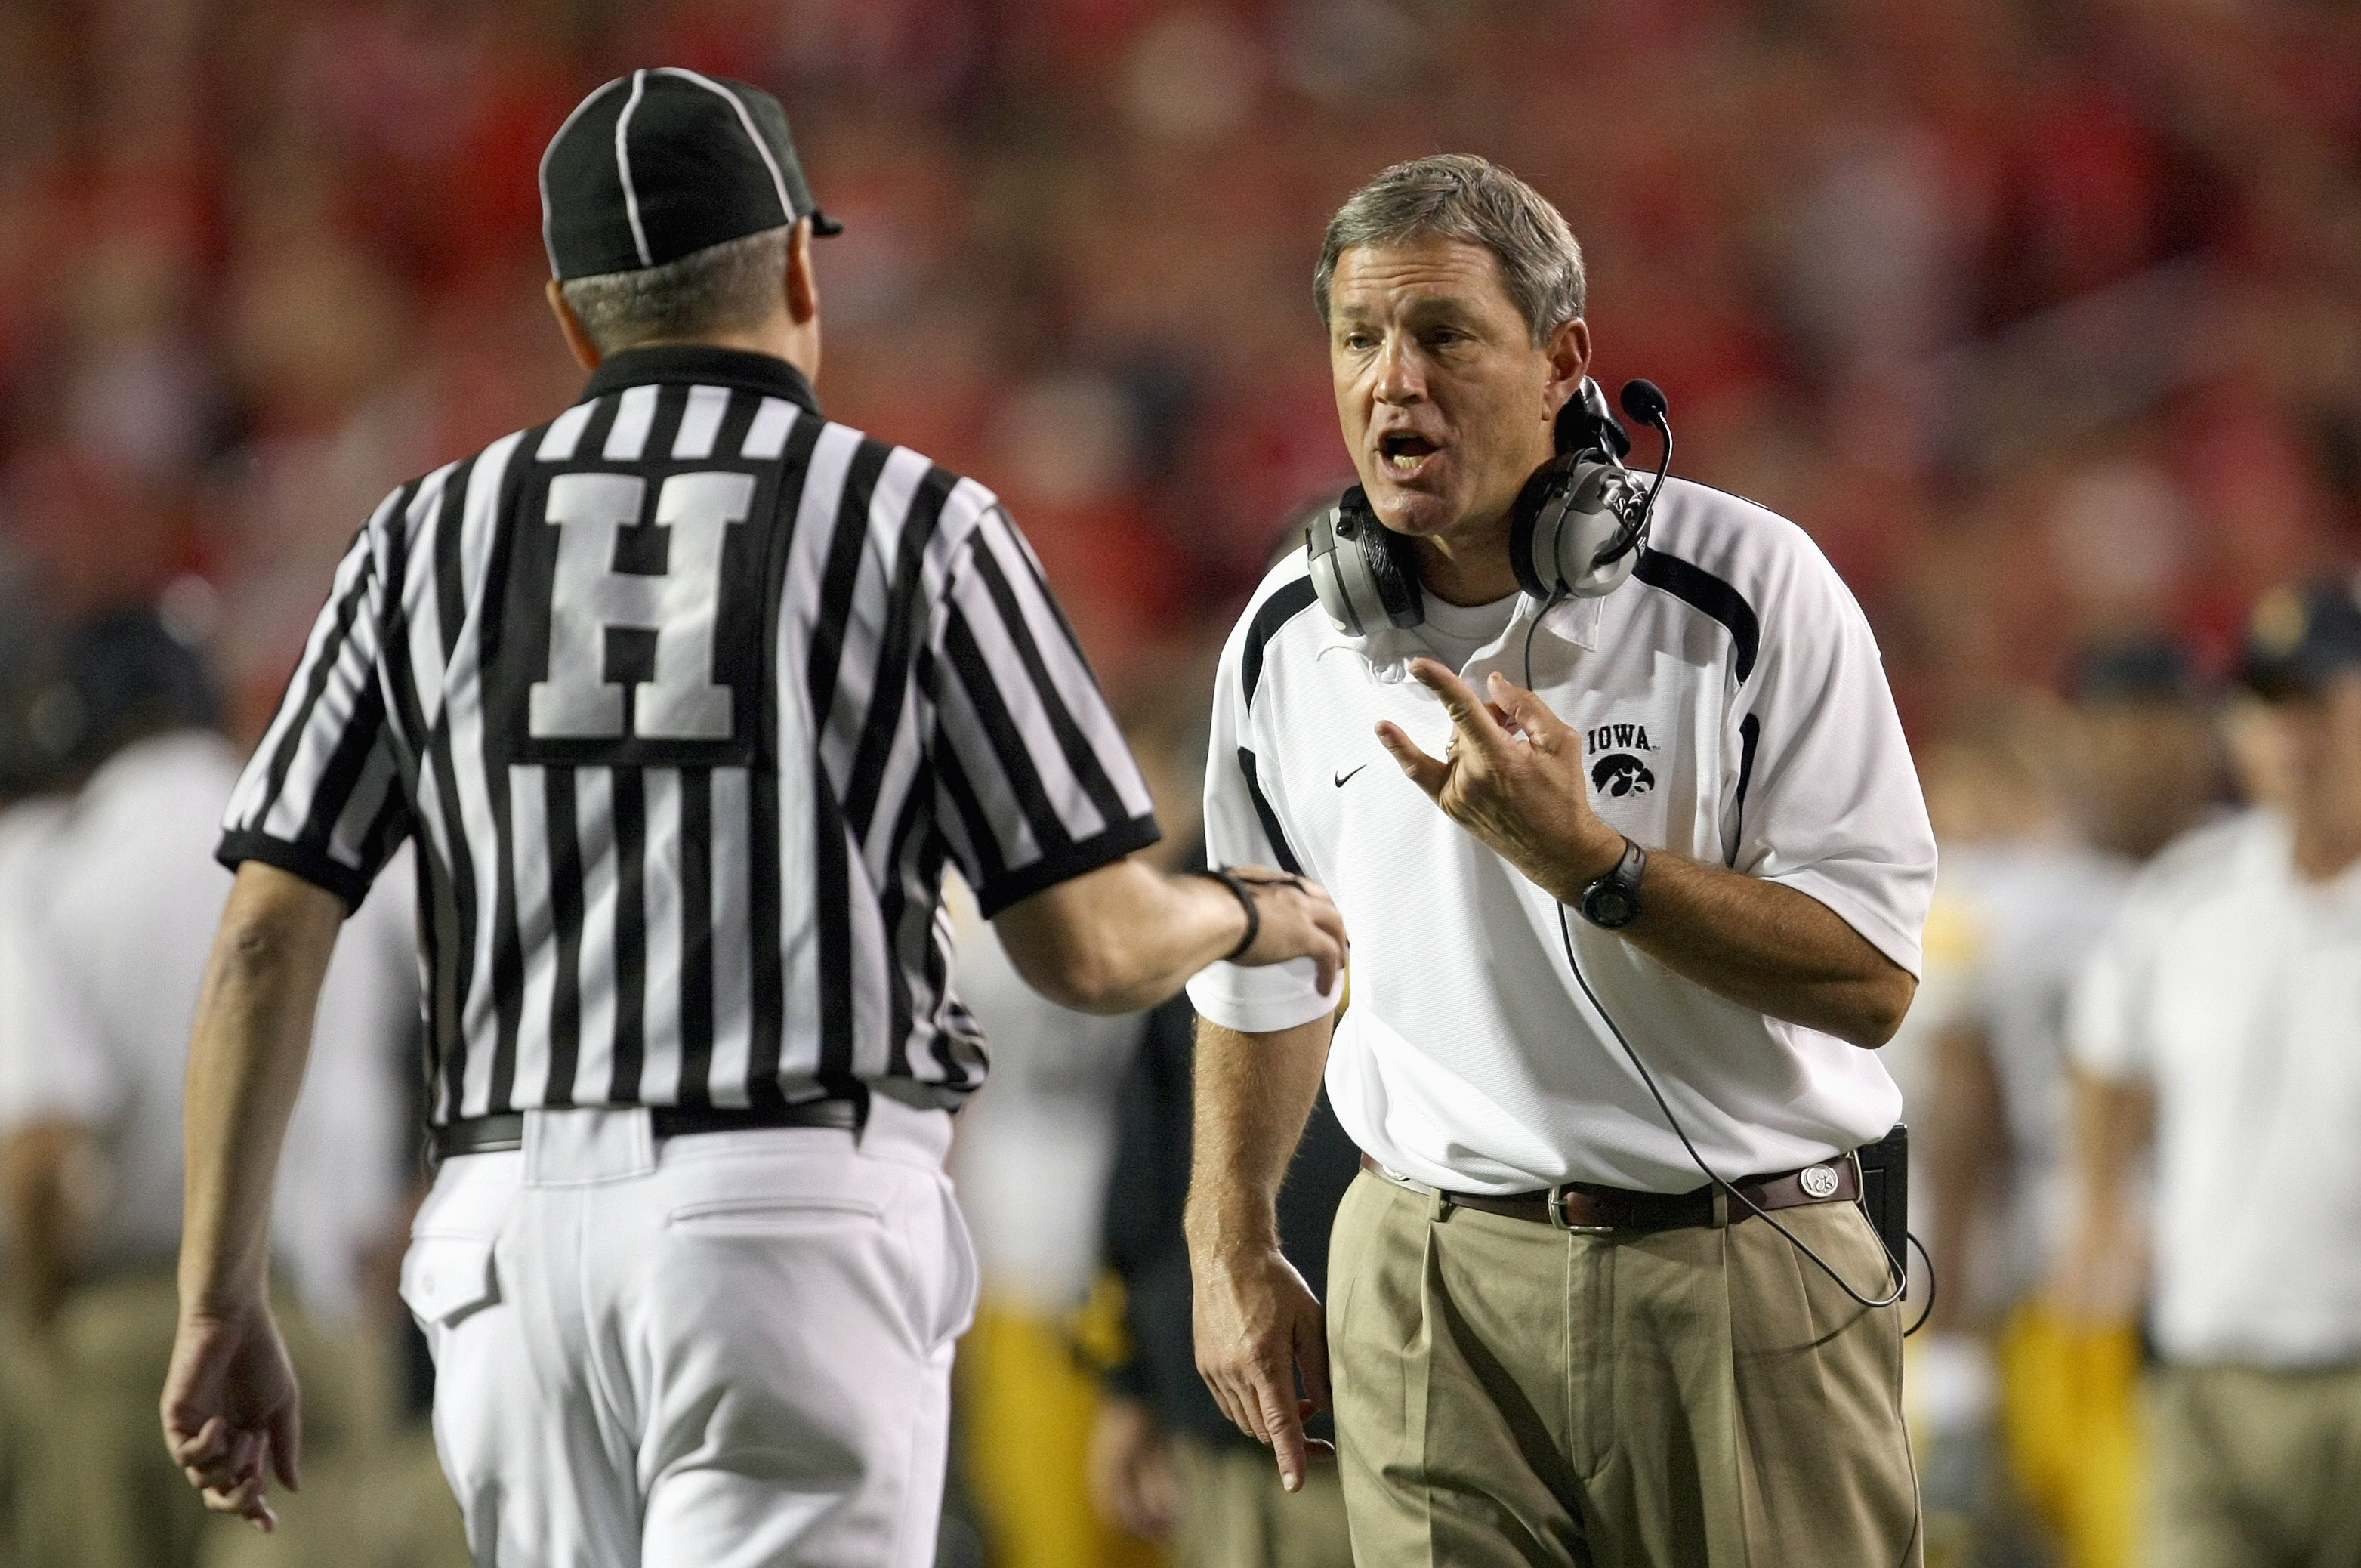 MADISON, WI - SEPTEMBER 22: Head coach Kirk Ferentz of the Iowa Hawkeyes questions the referee during a game against the Wisconsin Badgers at Camp Randall Stadium September 22, 2007 in Madison, Wisconsin. (Photo by Jonathan Daniel/Getty Images)